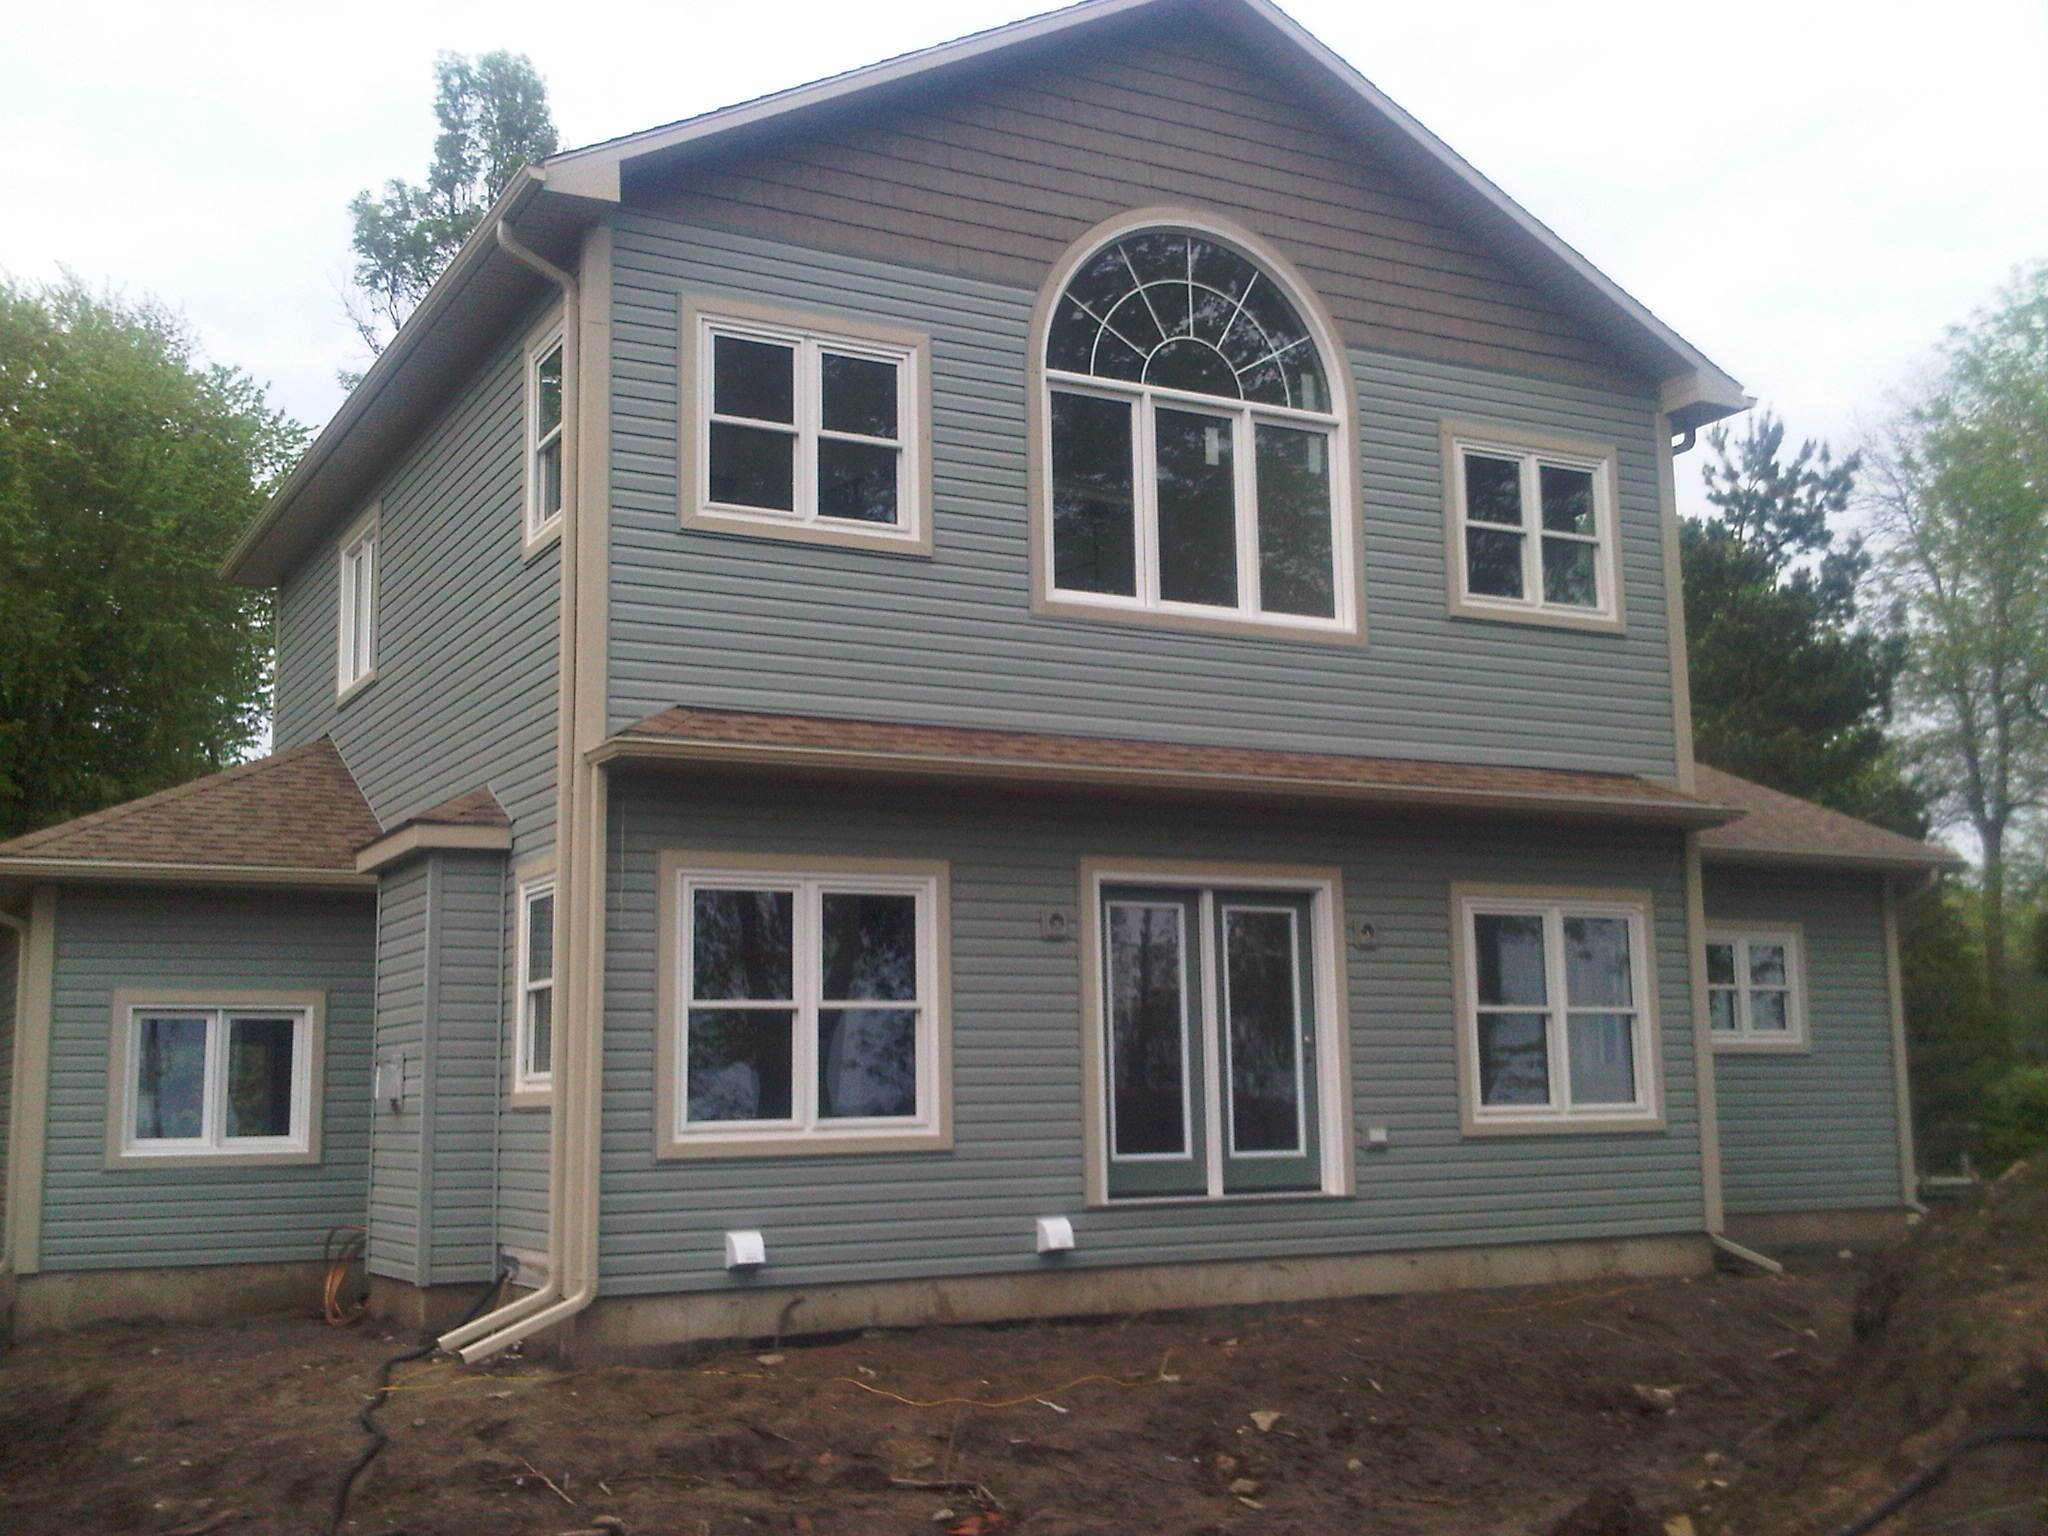 new siding on two-storey home